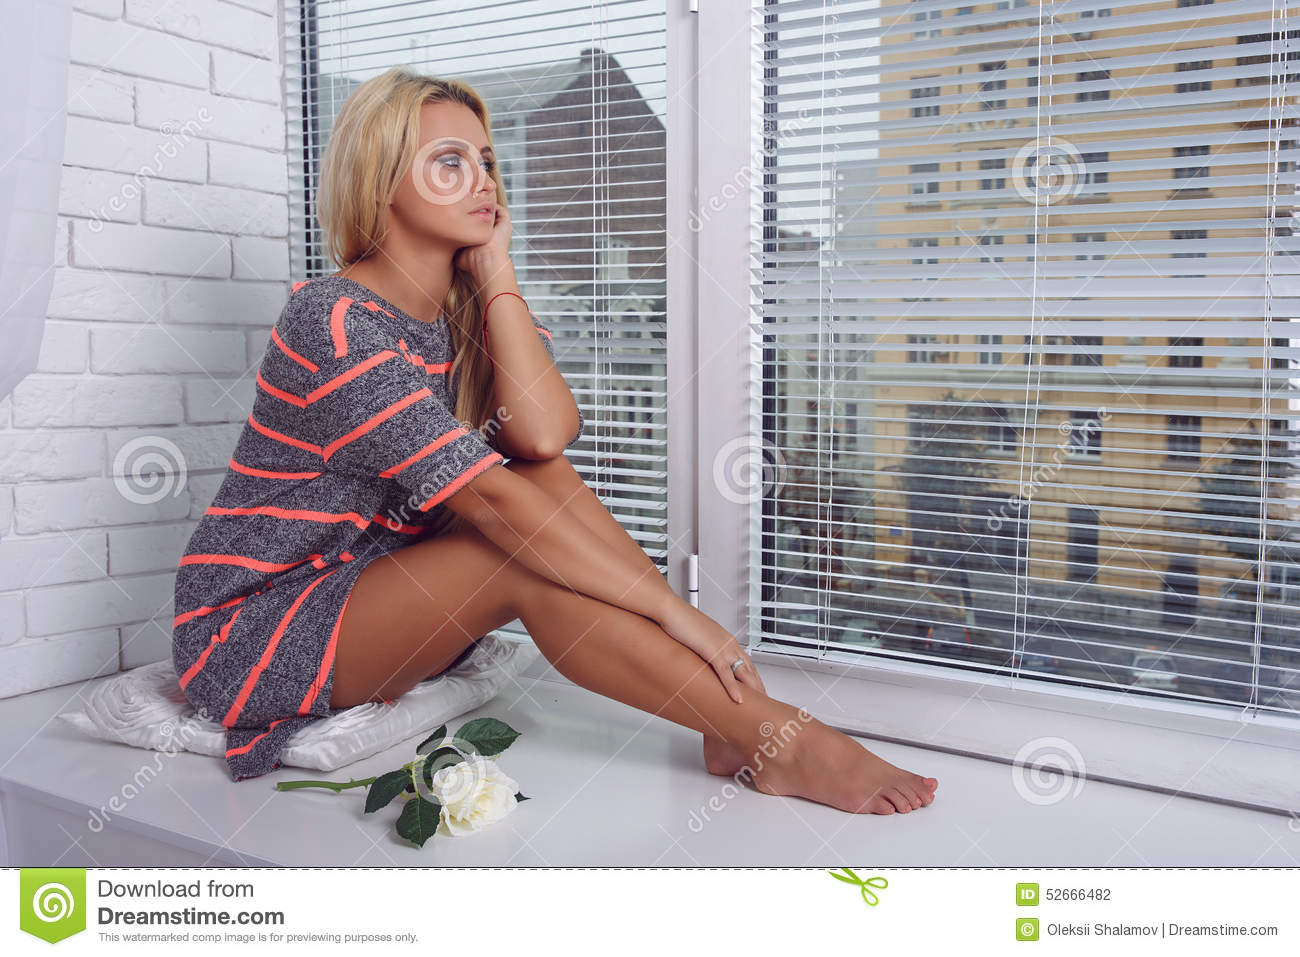 https://thumbs.dreamstime.com/z/girl-sitting-near-window-thought-blond-which-can-see-city-52666482.jpg